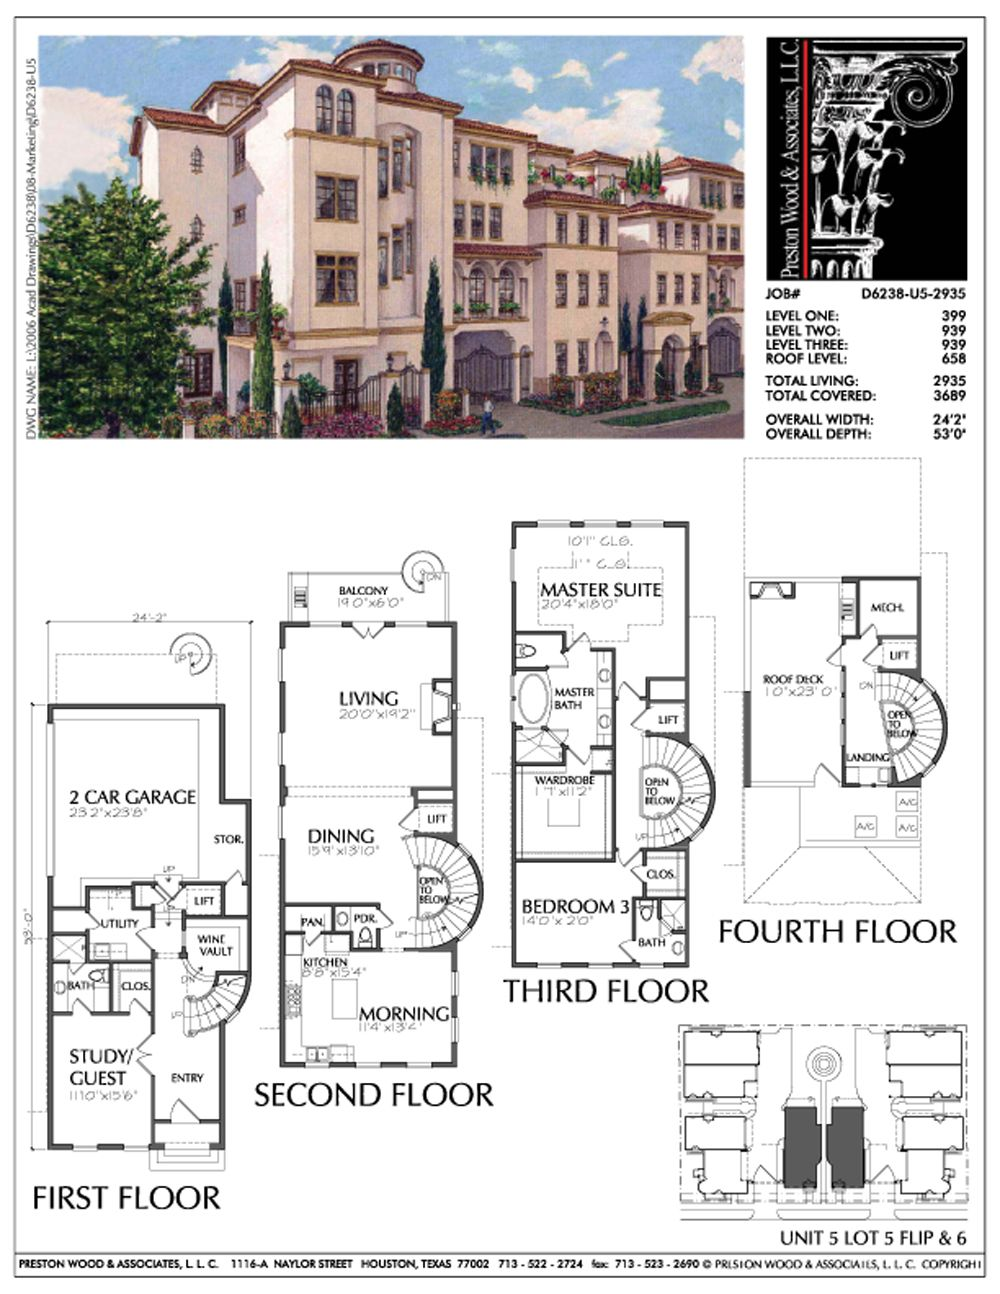 Townhome Plan D6238 U5 Townhouse Town House Floor Plan